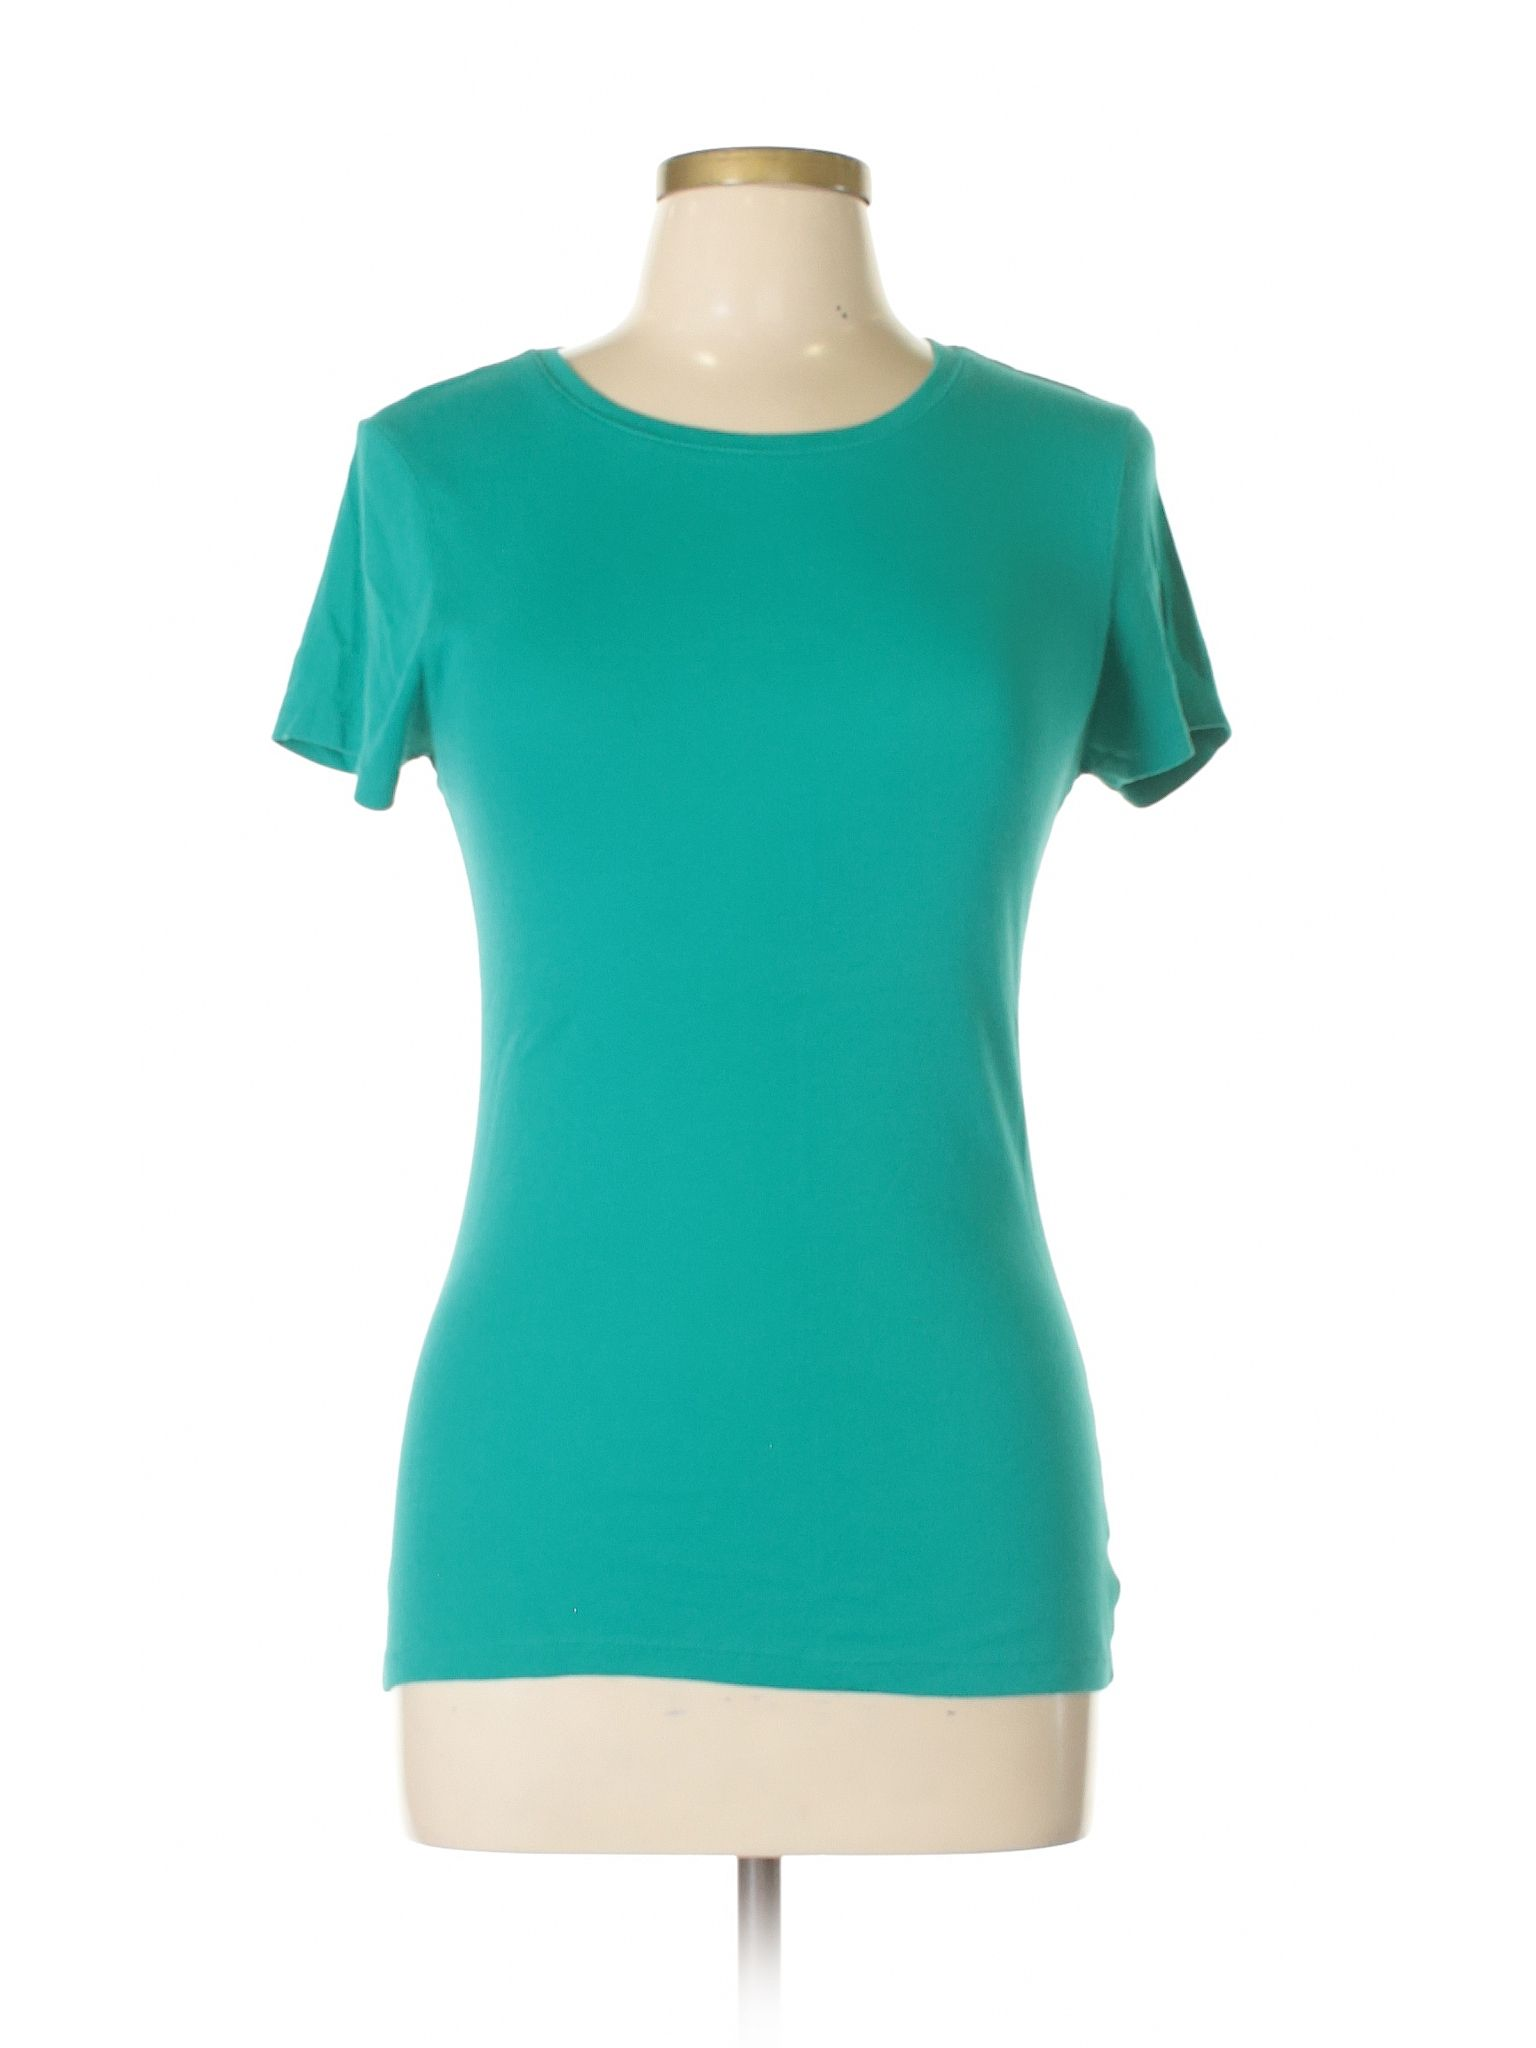 Old Navy Short Sleeve T Shirt Size 800 Teal Womens